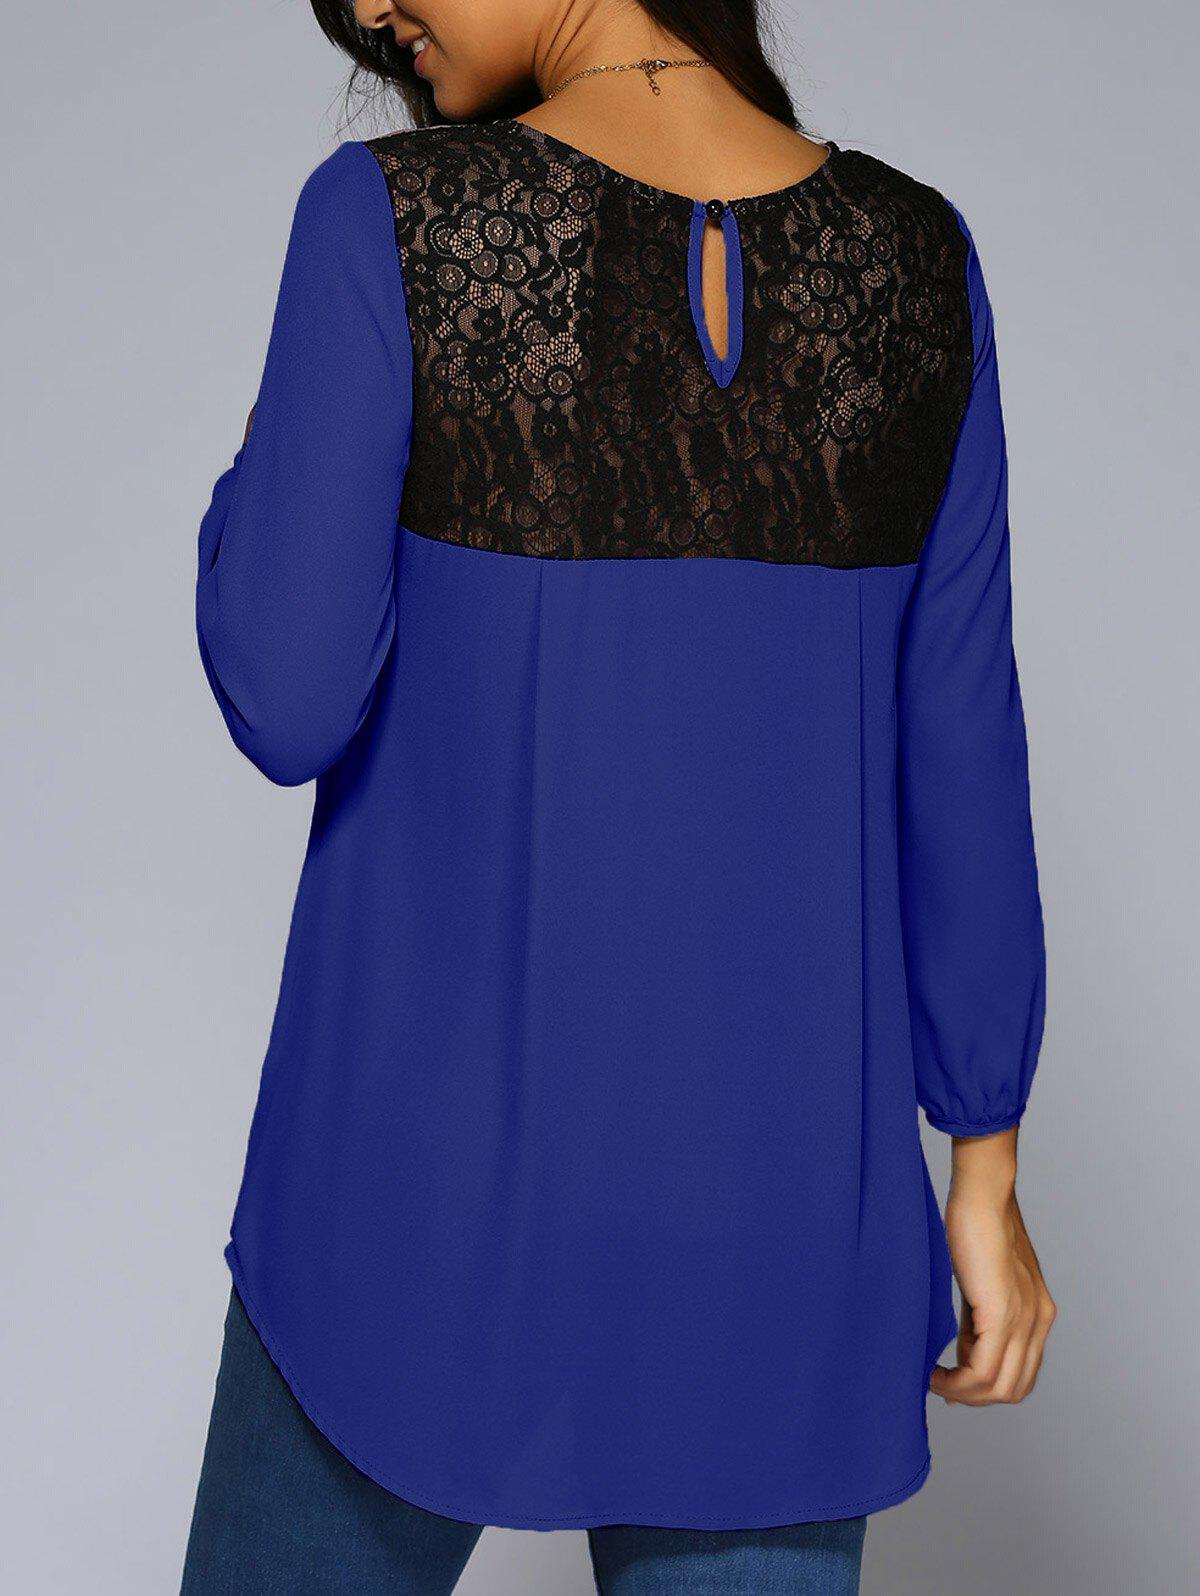 Lace Patchwork High Low Hem Chiffon Blouse - BLUE M